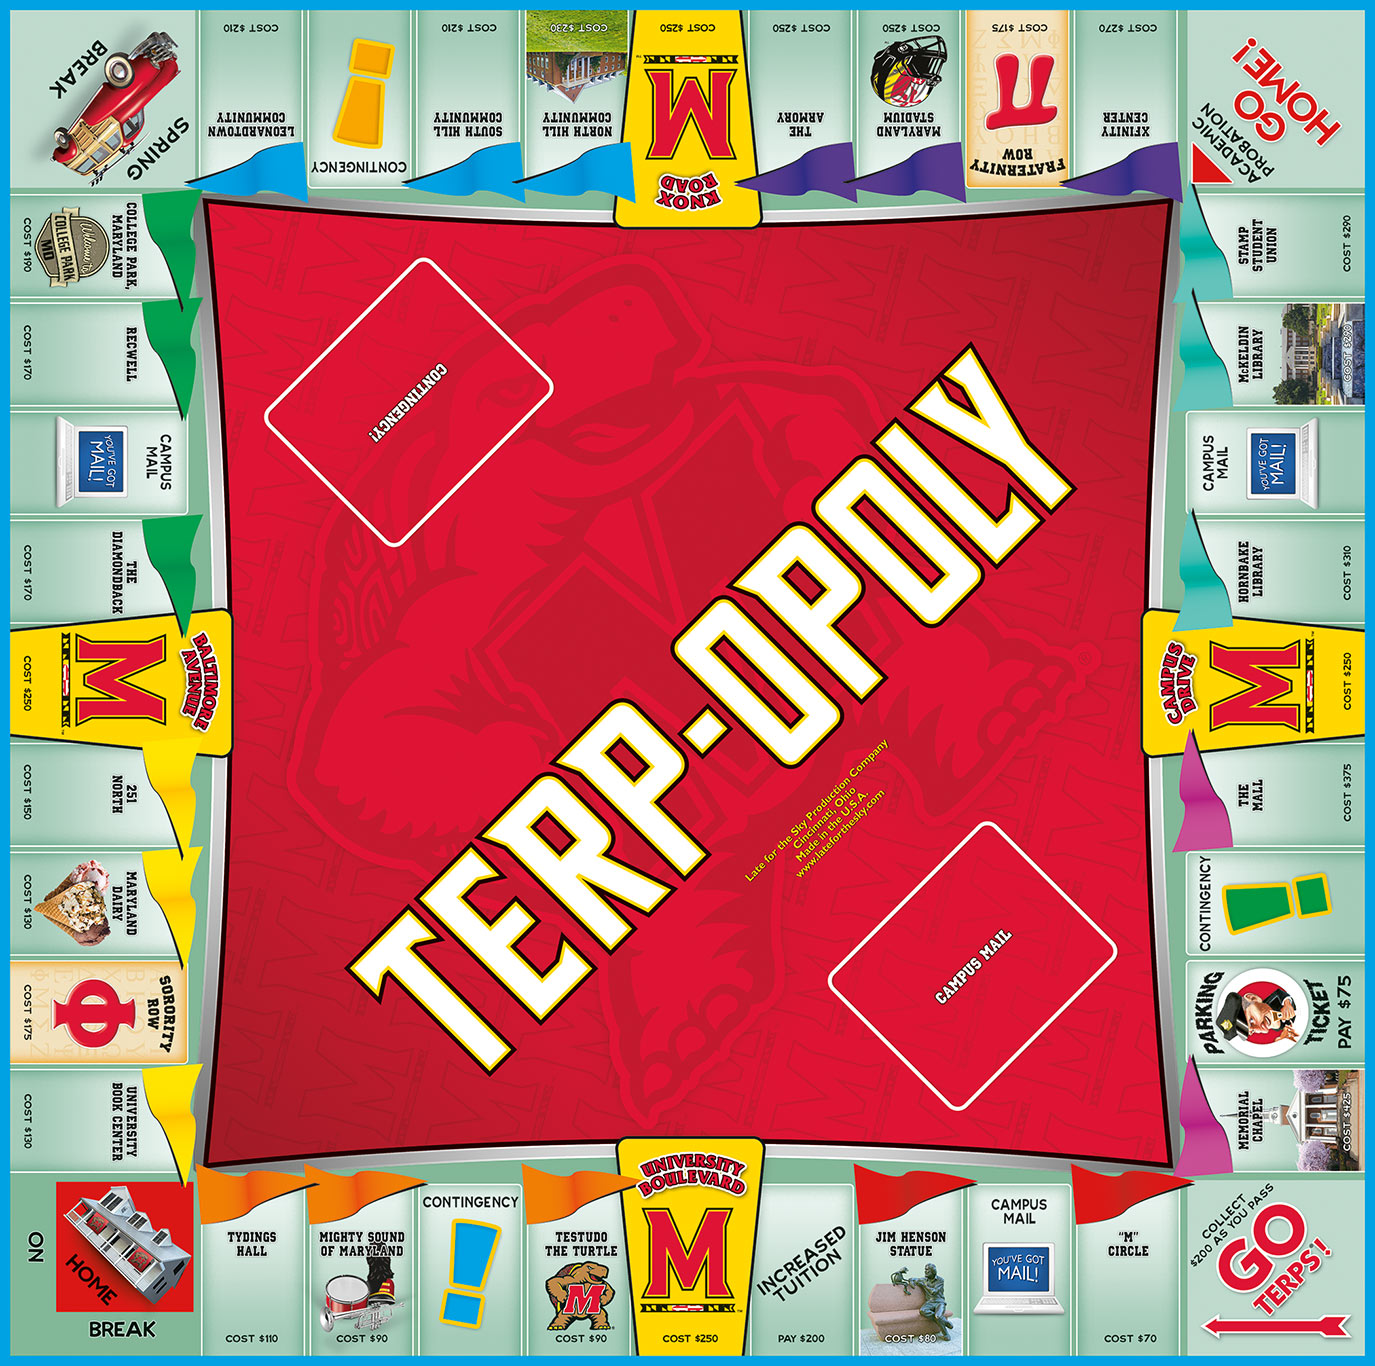 TERPOPOLY Board Game